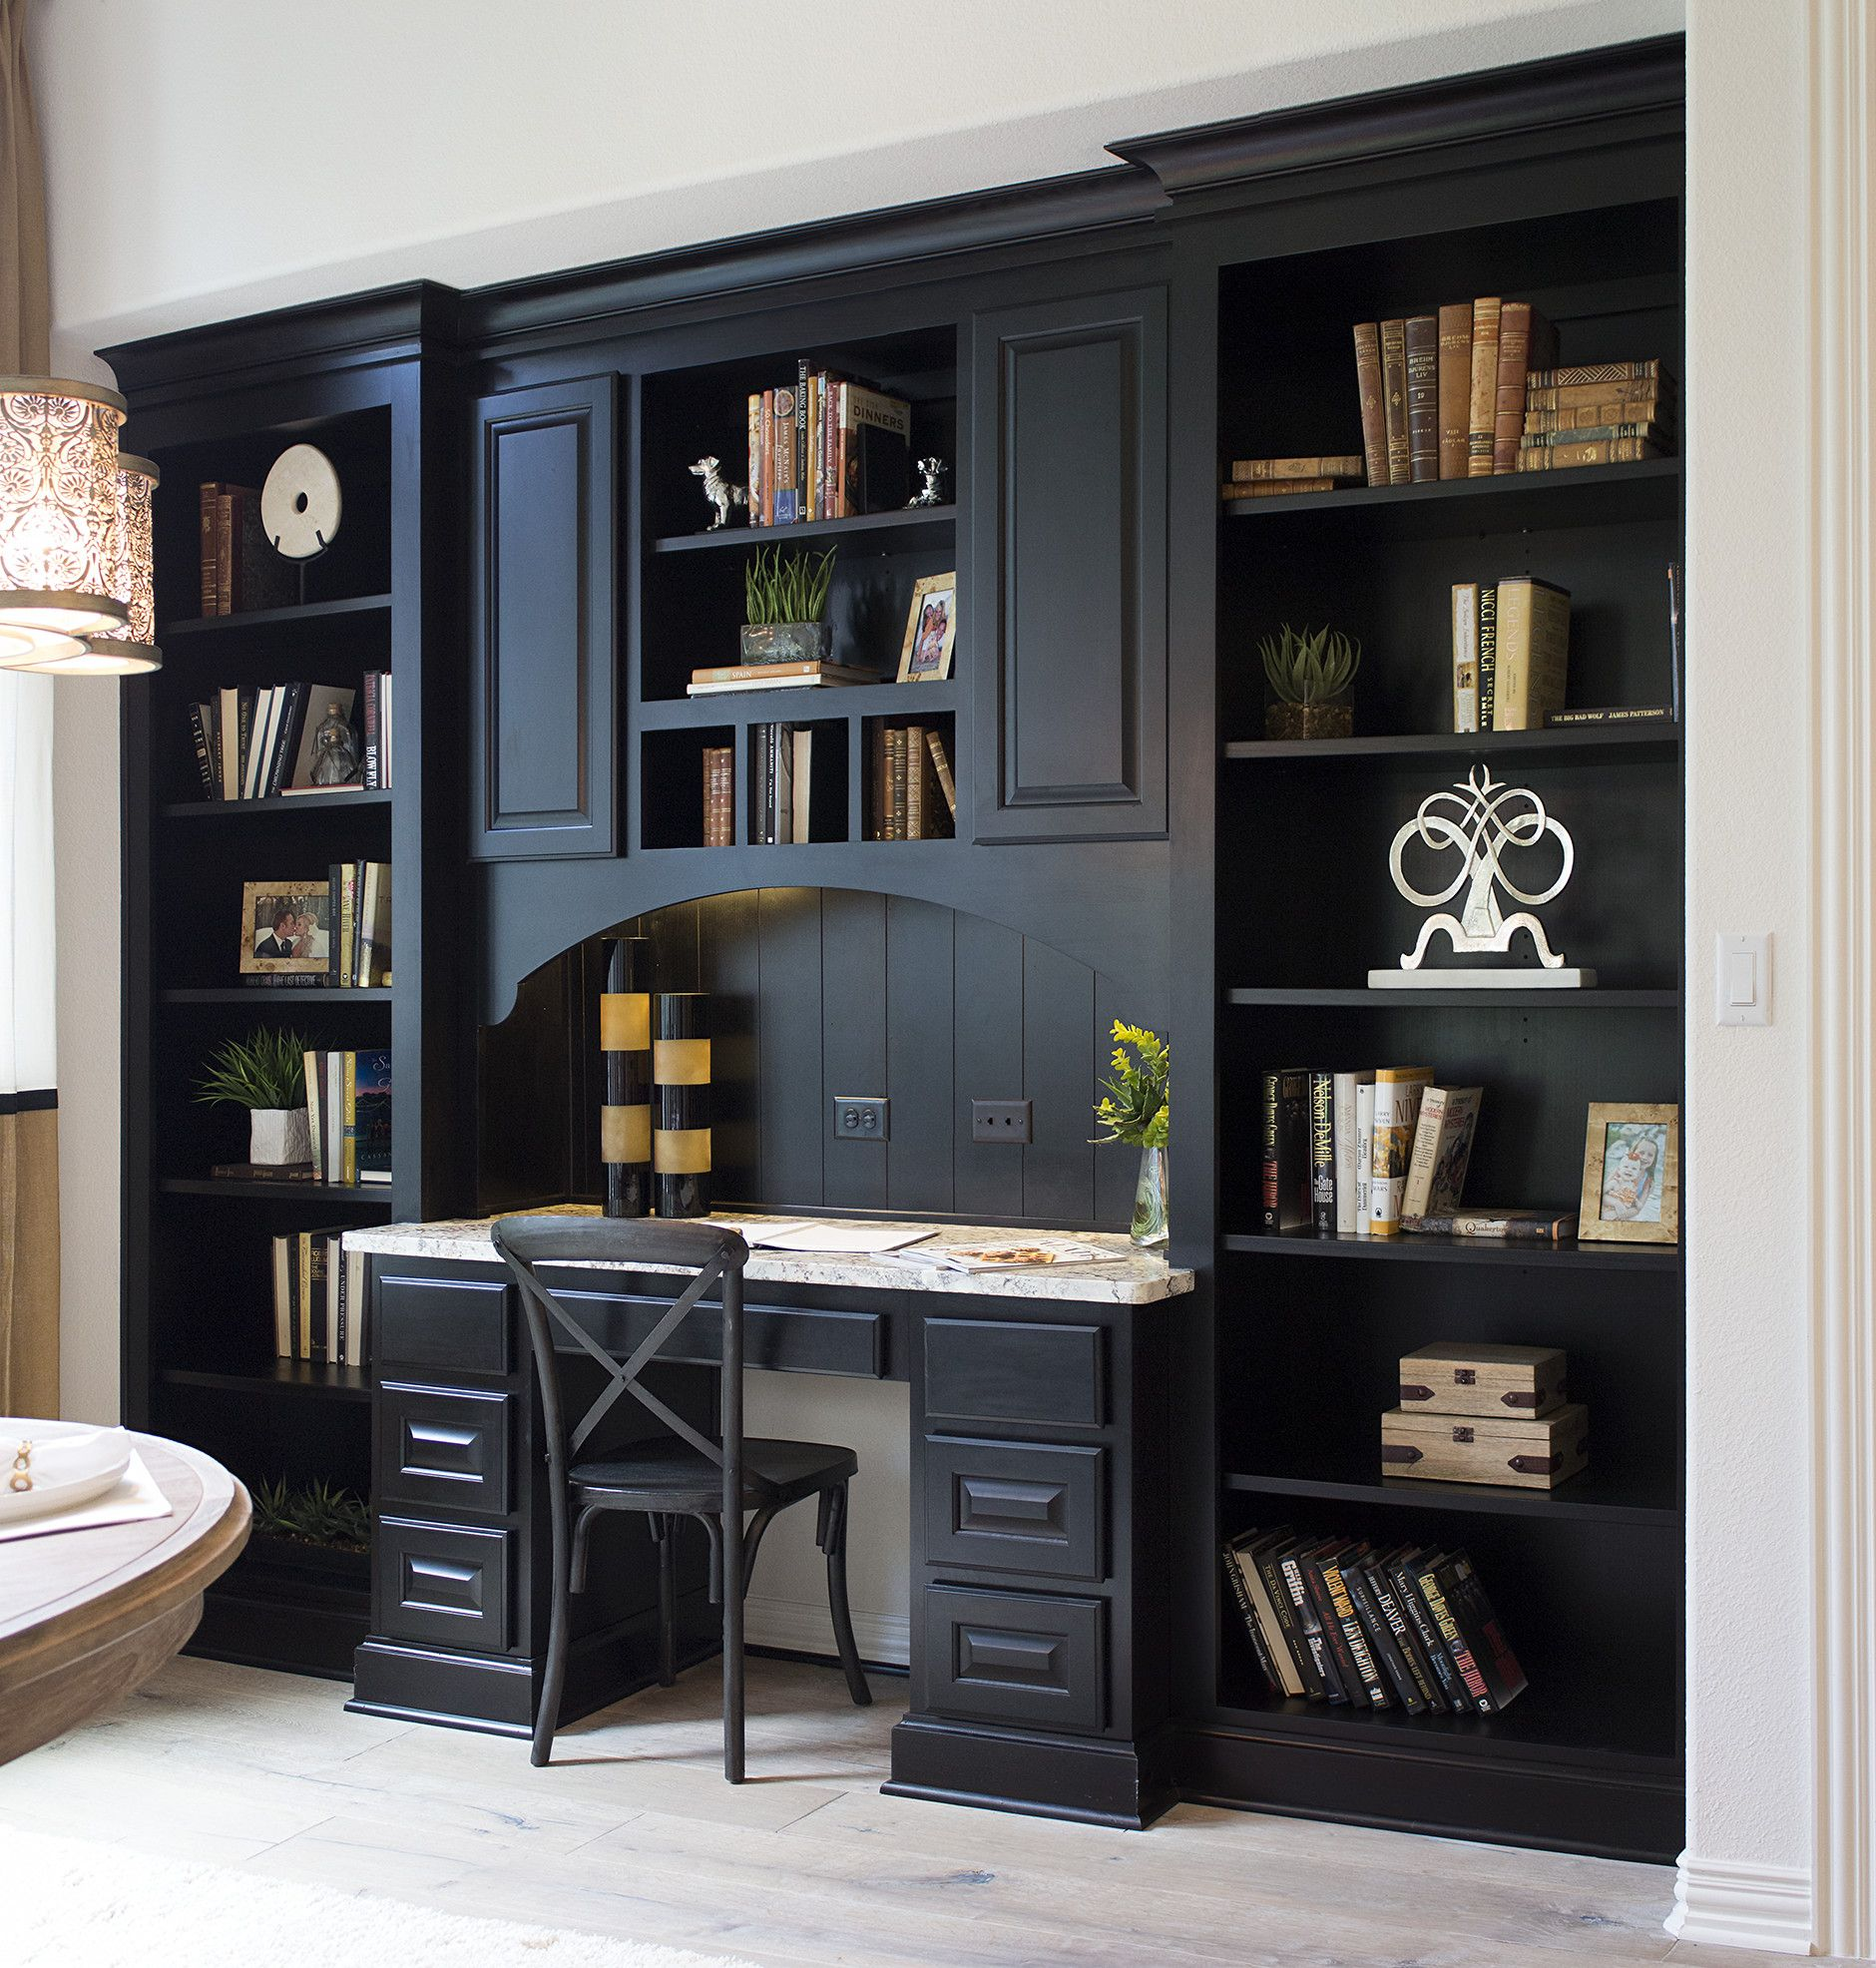 Cabinet Medical Persan Kitchen Planning Desk With Bookshelves In Almost Black Rye By